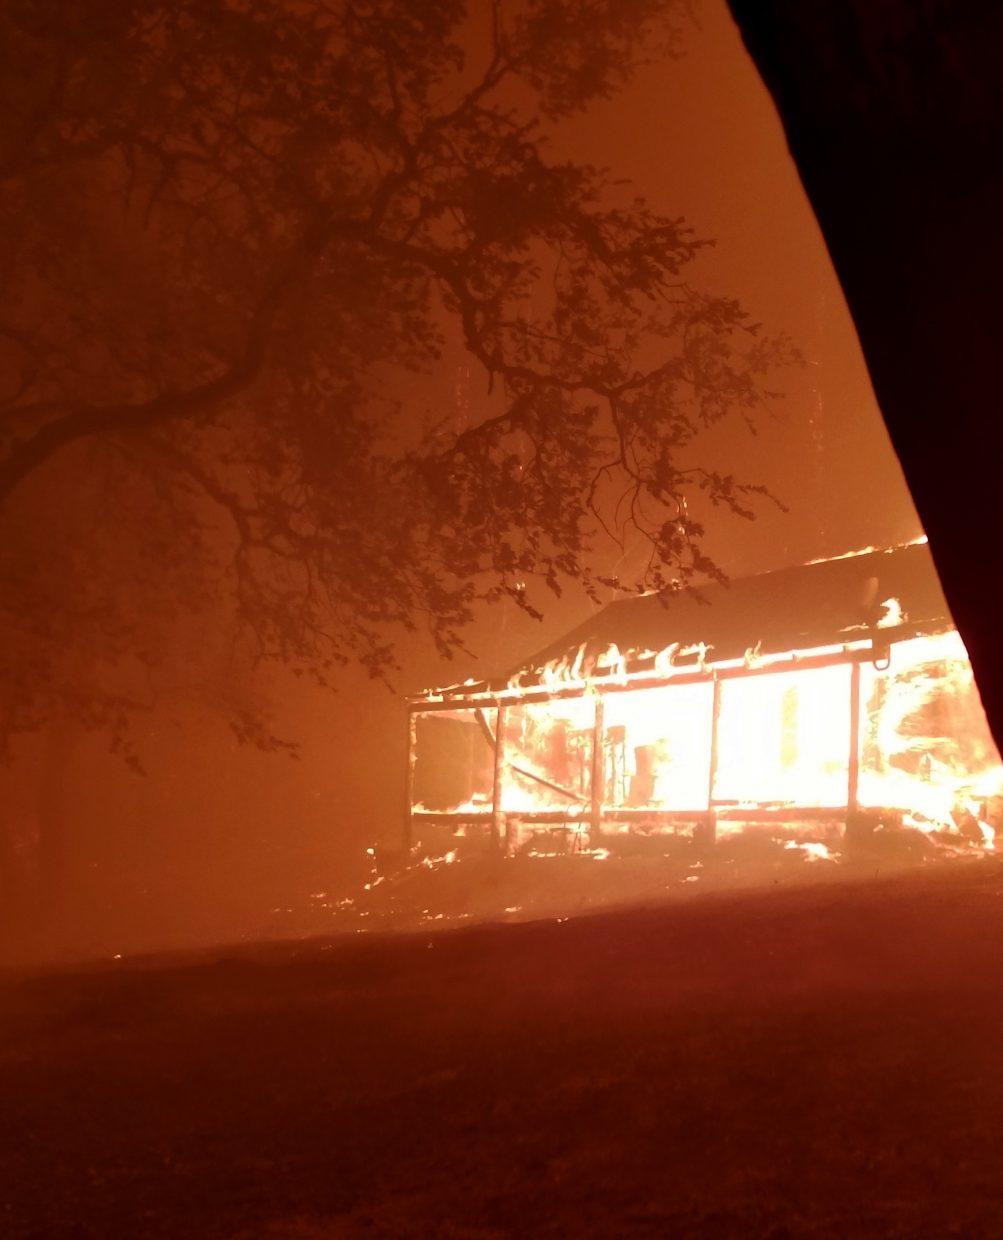 This Monday, Oct. 9, 2017, photo provided by Paul Hanssen shows his house burning in the Redwood Valley, Calif. Hanssen hid inside a portable trailer wrapped in water-soaked towels while the fast-moving wildfire tore through his mountain home.